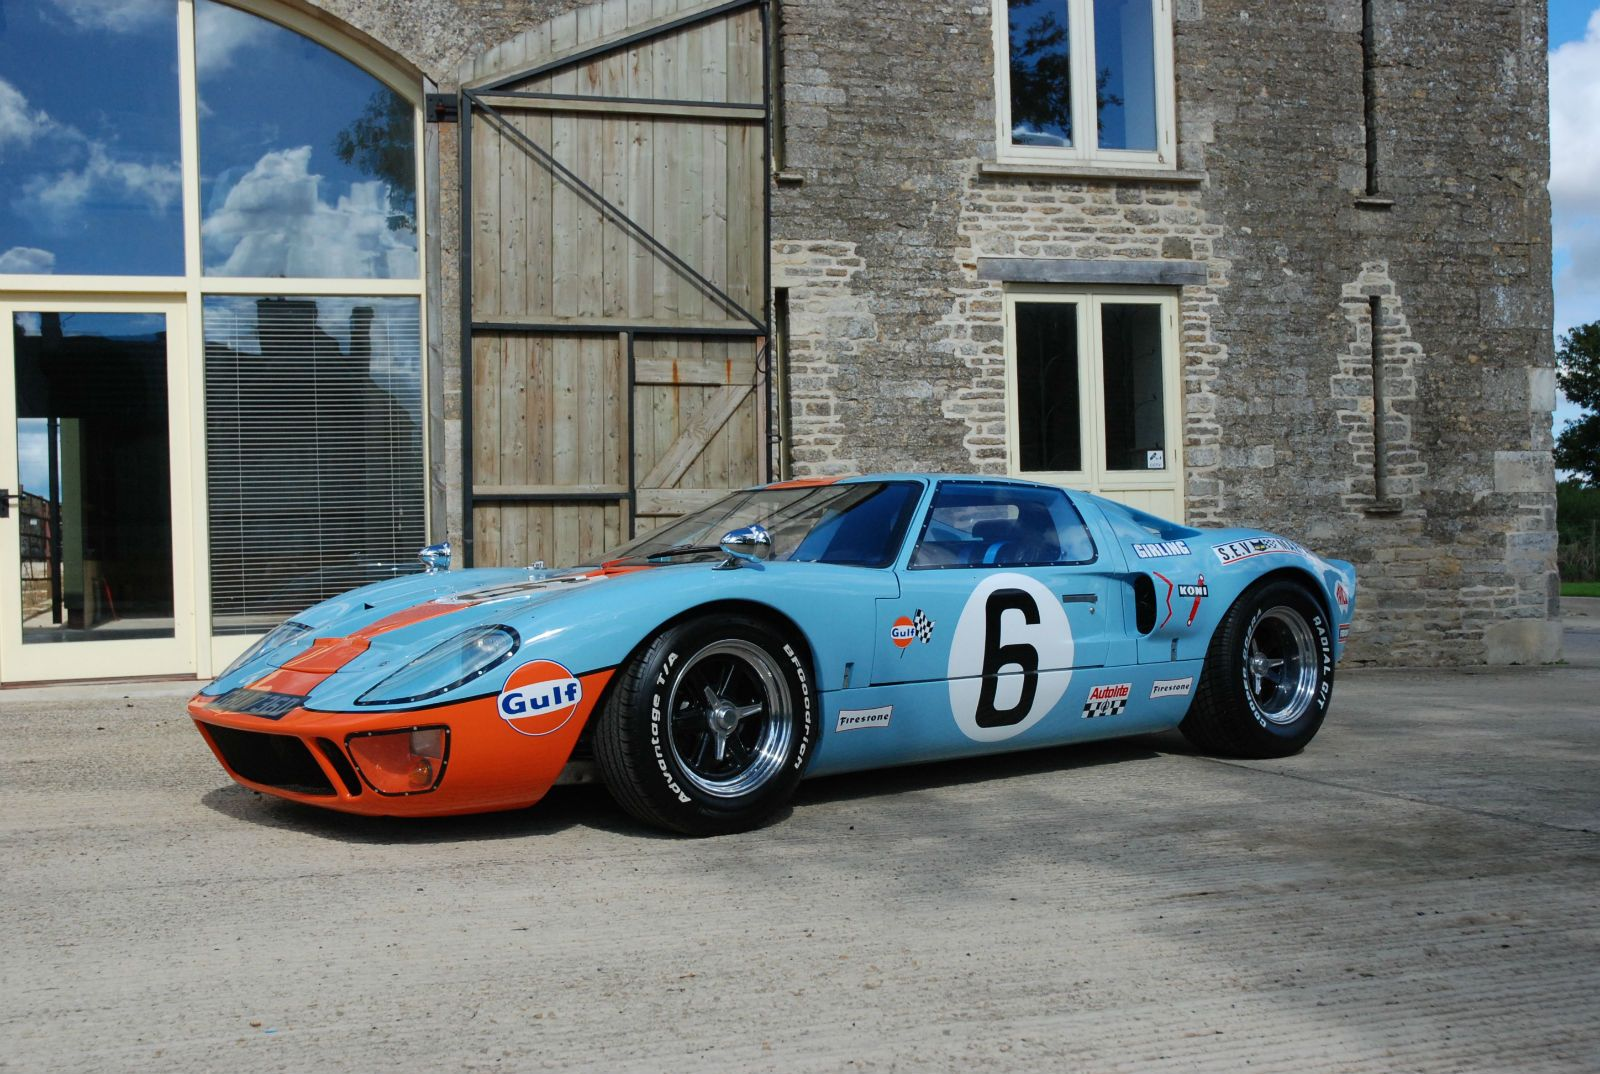 Ford Gt40 Jacky Ickx Gt40 Gulf Colours Ford Gt40 Gt40 Ford